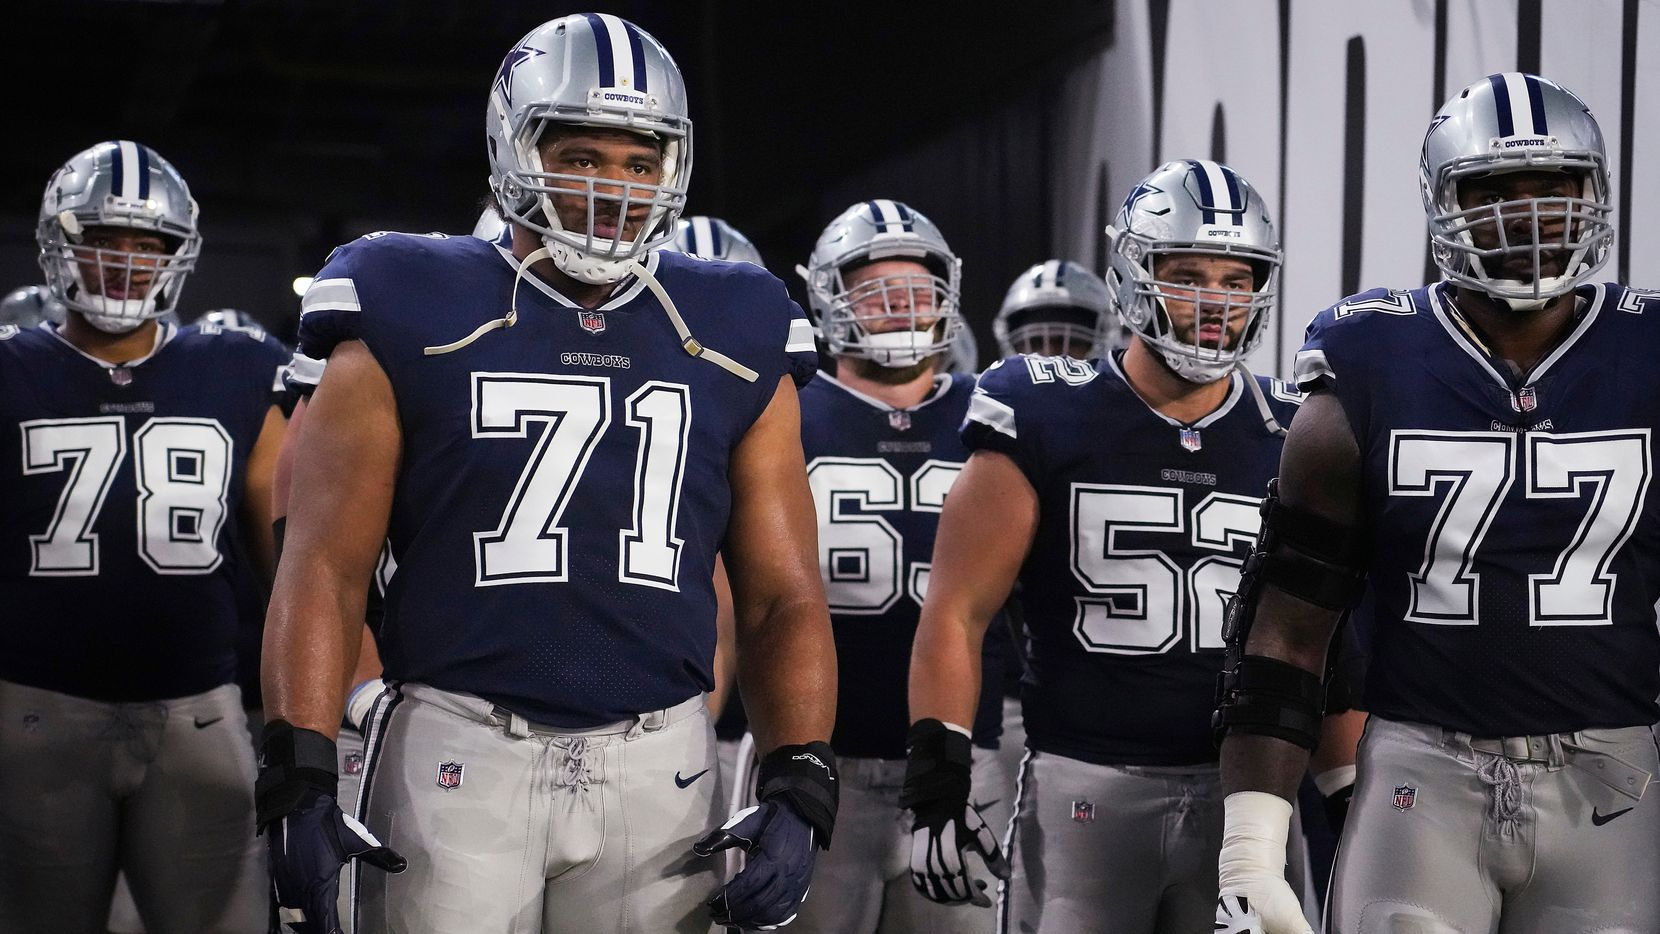 Dallas Cowboys offensive tackle La'el Collins (71) waits to take the field with offensive tackle Terence Steele (78), center Tyler Biadasz (63), guard Connor Williams (52) and offensive tackle Tyron Smith (77) before an NFL football game against the Tampa Bay Buccaneers at Raymond James Stadium on Thursday, Sept. 9, 2021, in Tampa, Fla. (Smiley N. Pool/The Dallas Morning News)